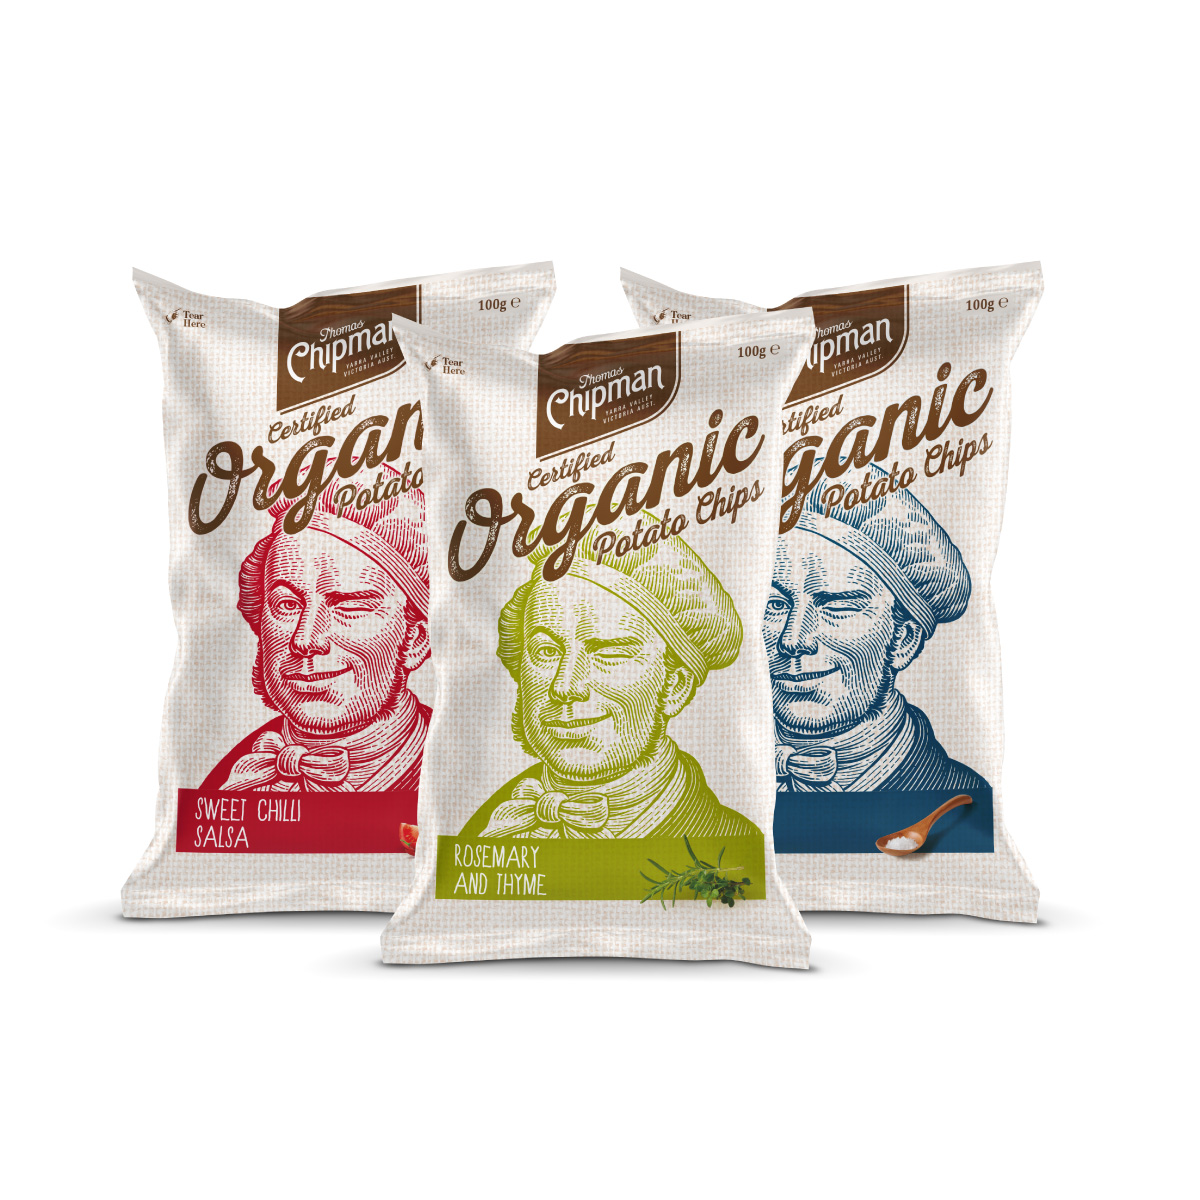 Davidson Branding FMCG Packaging Thomas Chipman Potato Chips Range